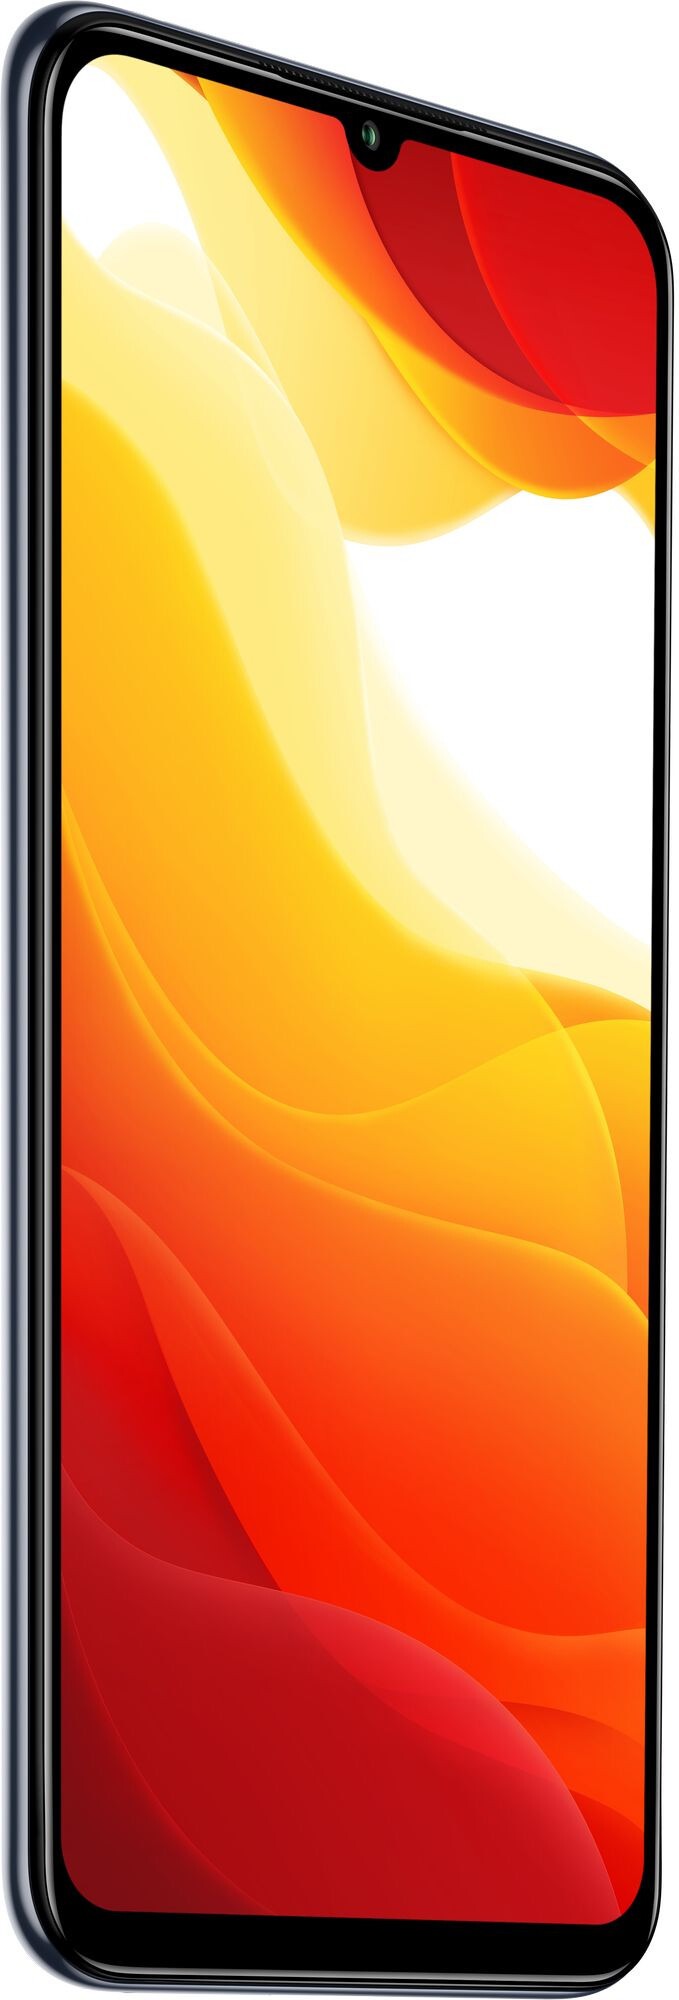 Smartphone Mi 10 Lite - Global- 6+64GB - Gri